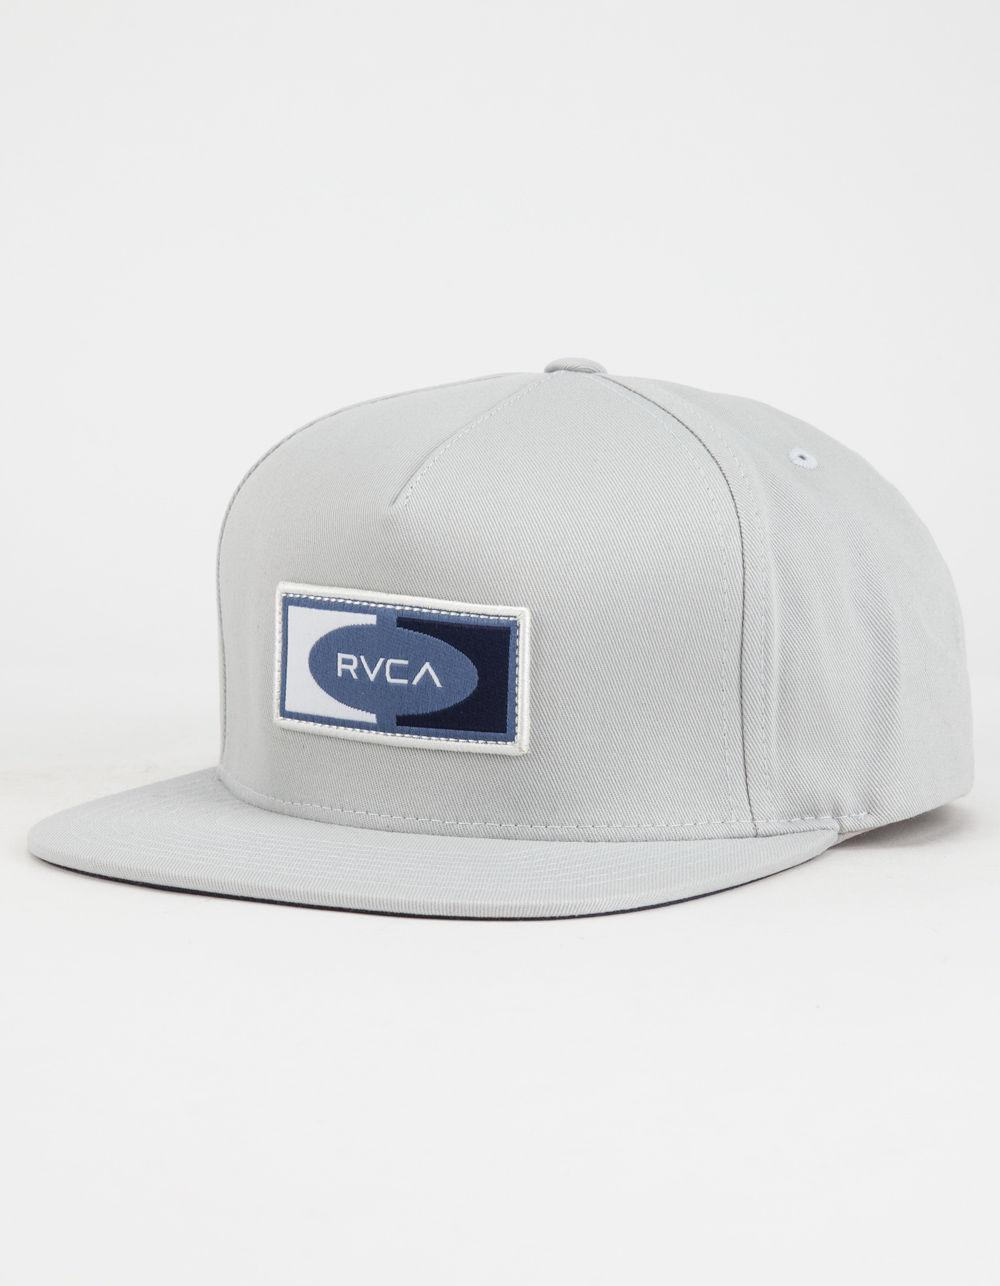 buy popular 9bf67 14432 ... greece coupon lyst rvca breez mens snapback hat in white for men 2e1c3  8ff3f 1924e 88a4a